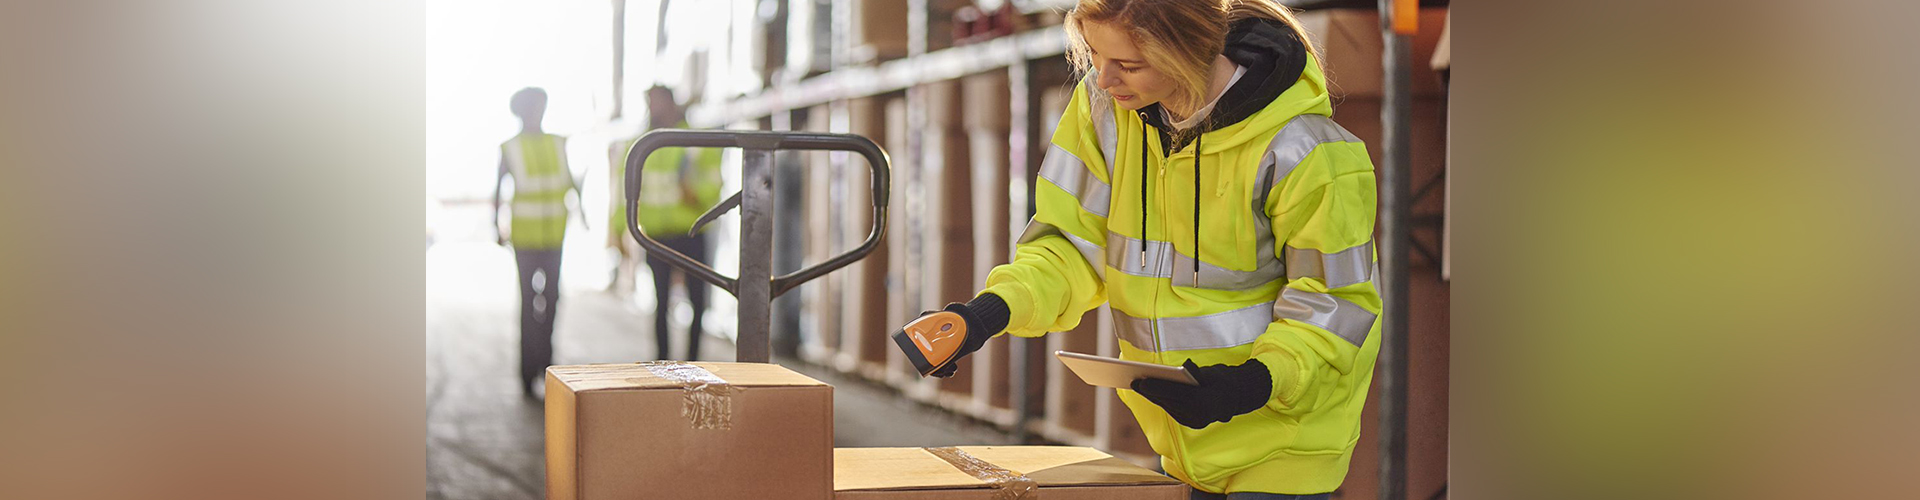 Image of workers loading packages on a truck | Photo Credit: iStock